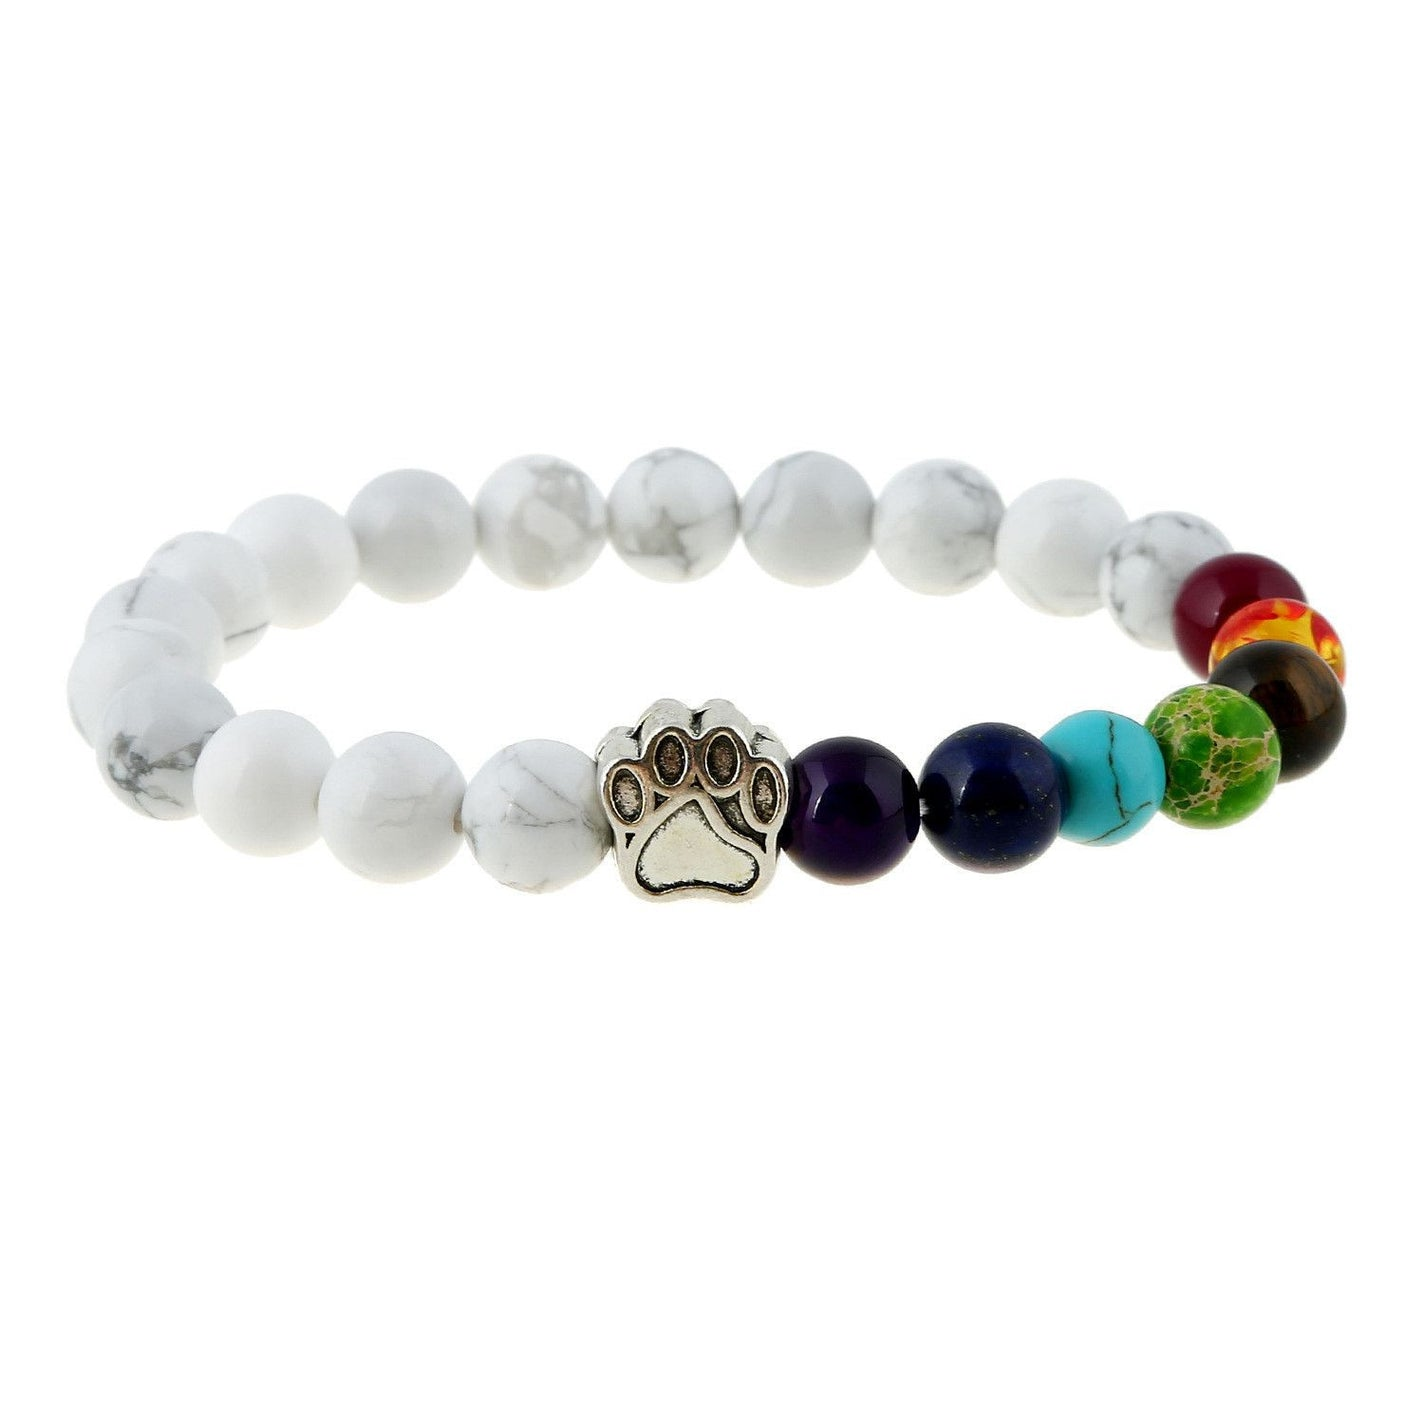 Natural Stone Bead 7 Chakra Healing Balance Bracelet with Dog Paw-Themed Gifts-ASWH-Pets Hub Home